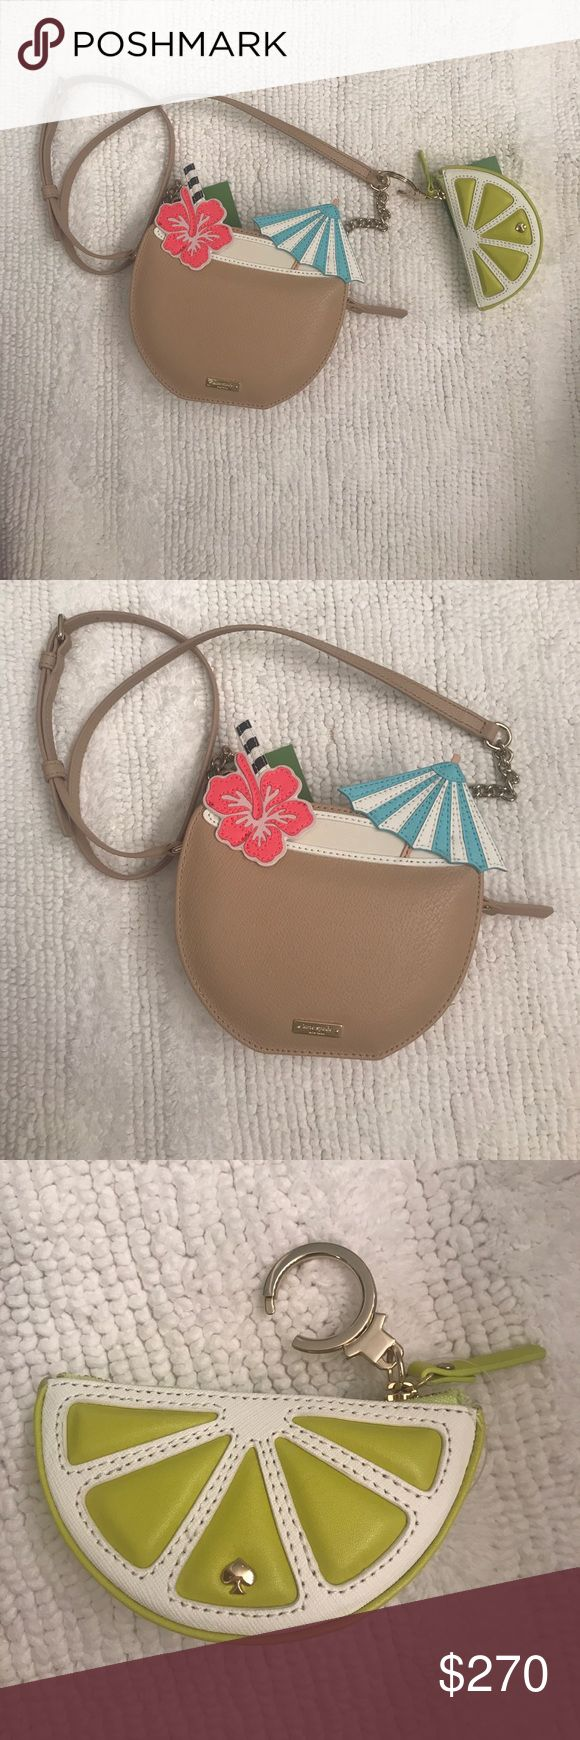 FINAL PRICE🌺🌴HP X2🌴🌺 KATE SPADE PURSE BUNDLE 🌴🌺HOST PICK🌴🌺 BEST IN BAGS PARTY🌴🌺Kate spade Crossbody Coconut Drink Purse with a side of Lime Keychain/Coin Purse- bundled together only. This is a very unique purse. I live at the beach so maybe it's just me !   😂❤️.                                               Special thanks to @mmadonna40 for the host pick please check out her amazing closet ! FINAL PRICE FIRM UN LISTING IF NOT SOLD THIS WEEKEND. kate spade Bags Crossbody Bags